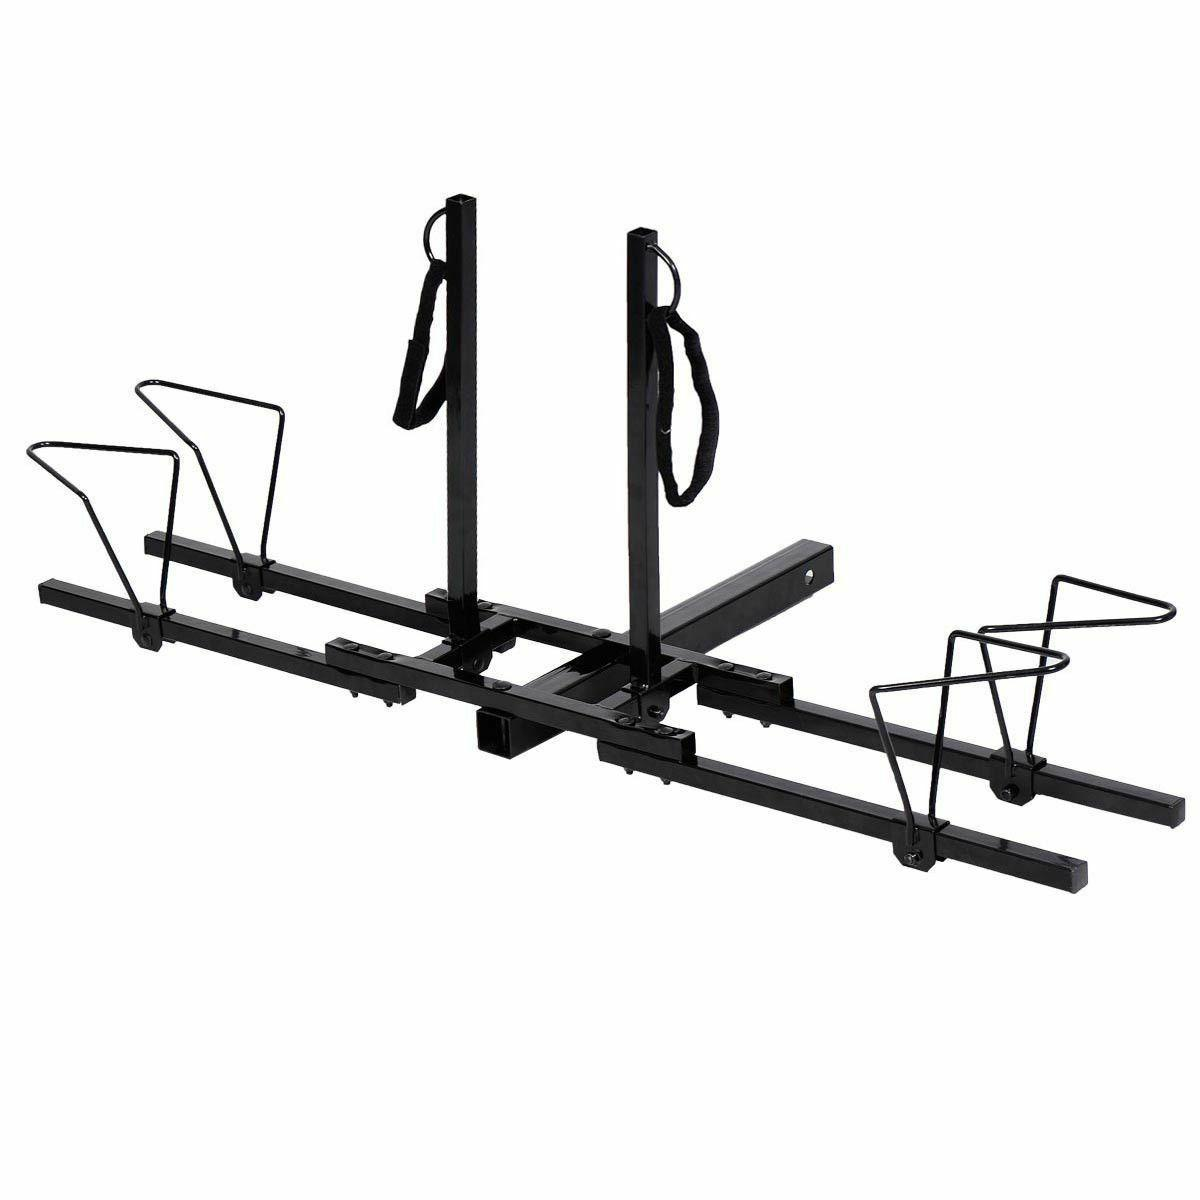 2 Bicycle Hitch Receiver Heavy 2'' Mount Rack Truck SUV